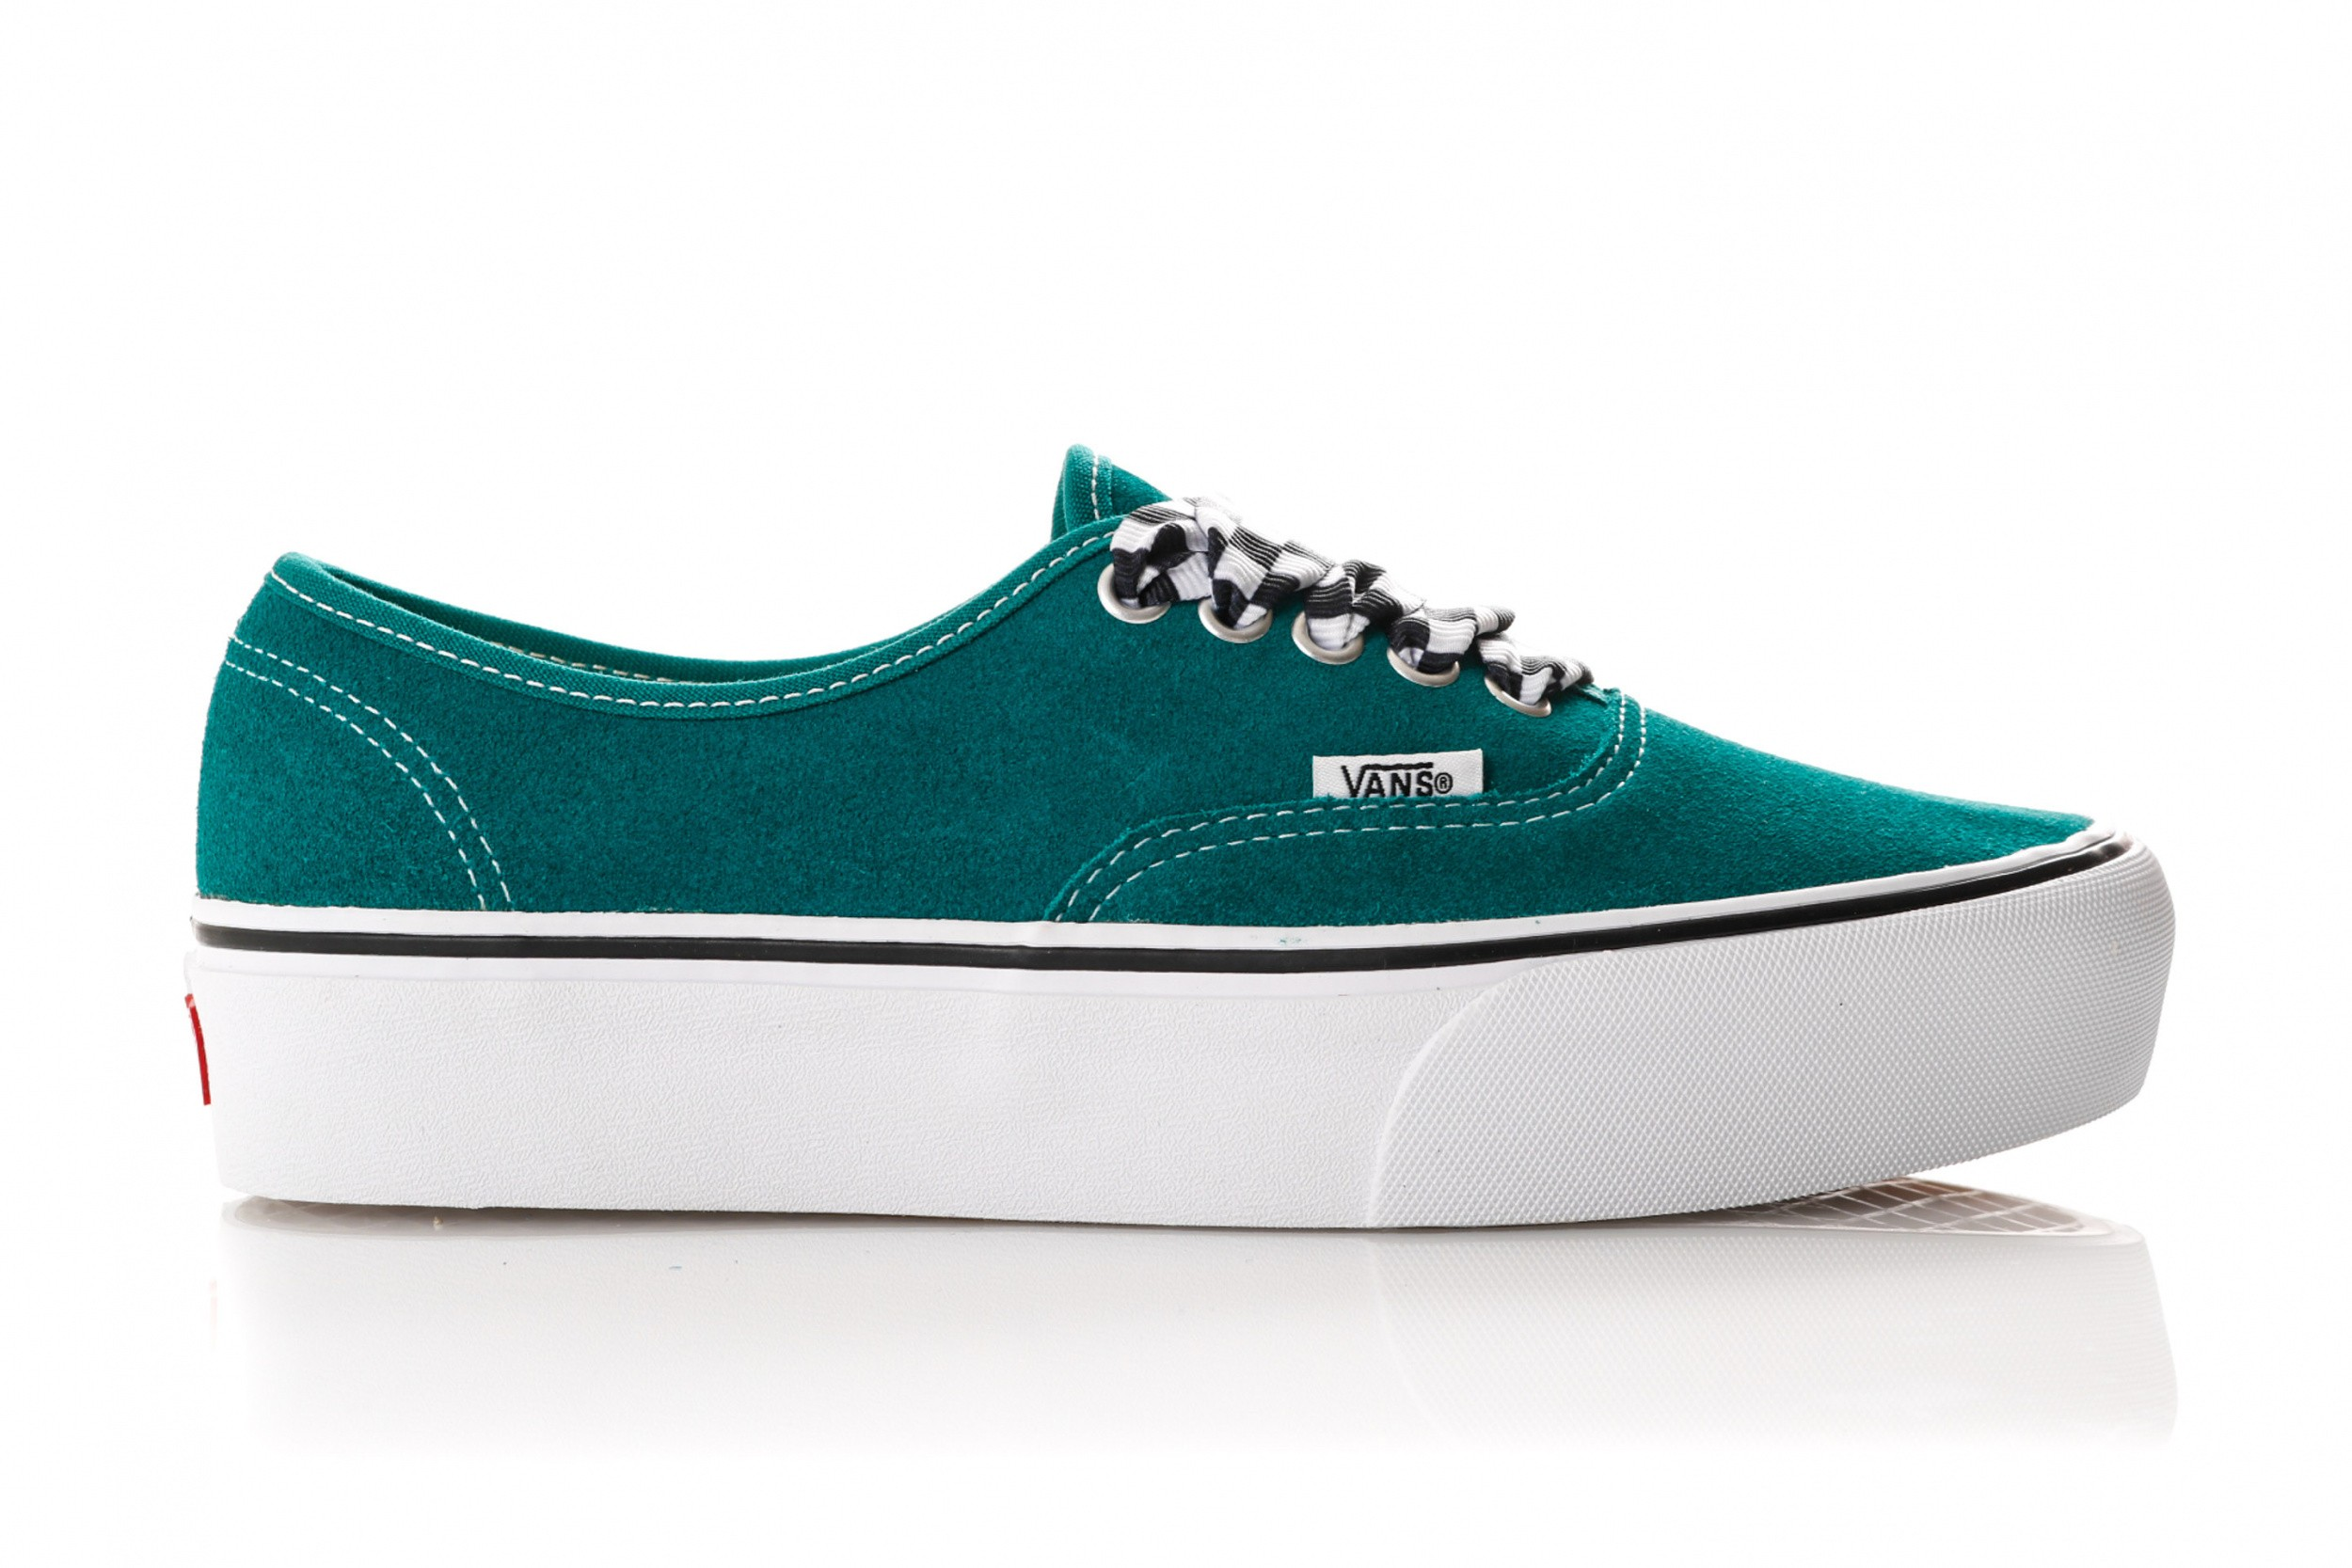 d25d171aeef Vans Ua Authentic Platform 2.0 Vn0A3Av8S1W Sneakers (Checkerboard Lace)  Quetzal Green/True White